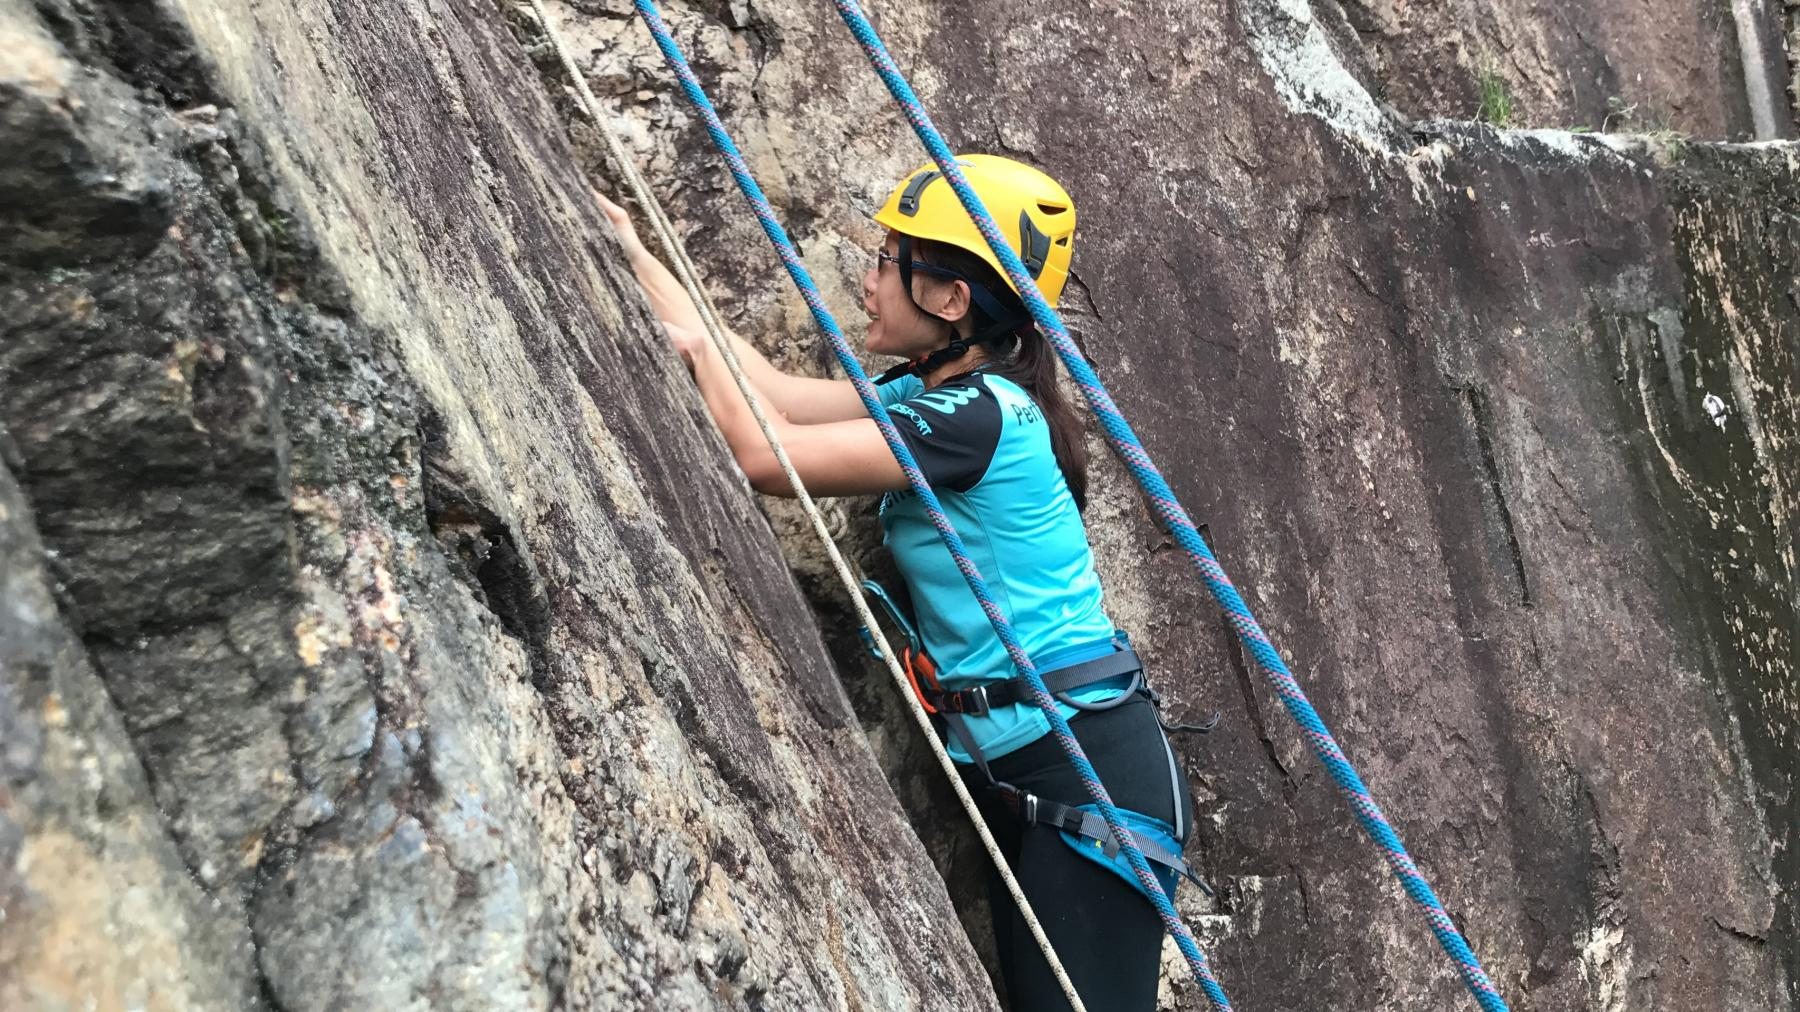 Natural Rock Wall Climbing and Abseiling starting at Dairy Farm Rock Climbing Wall Singapore